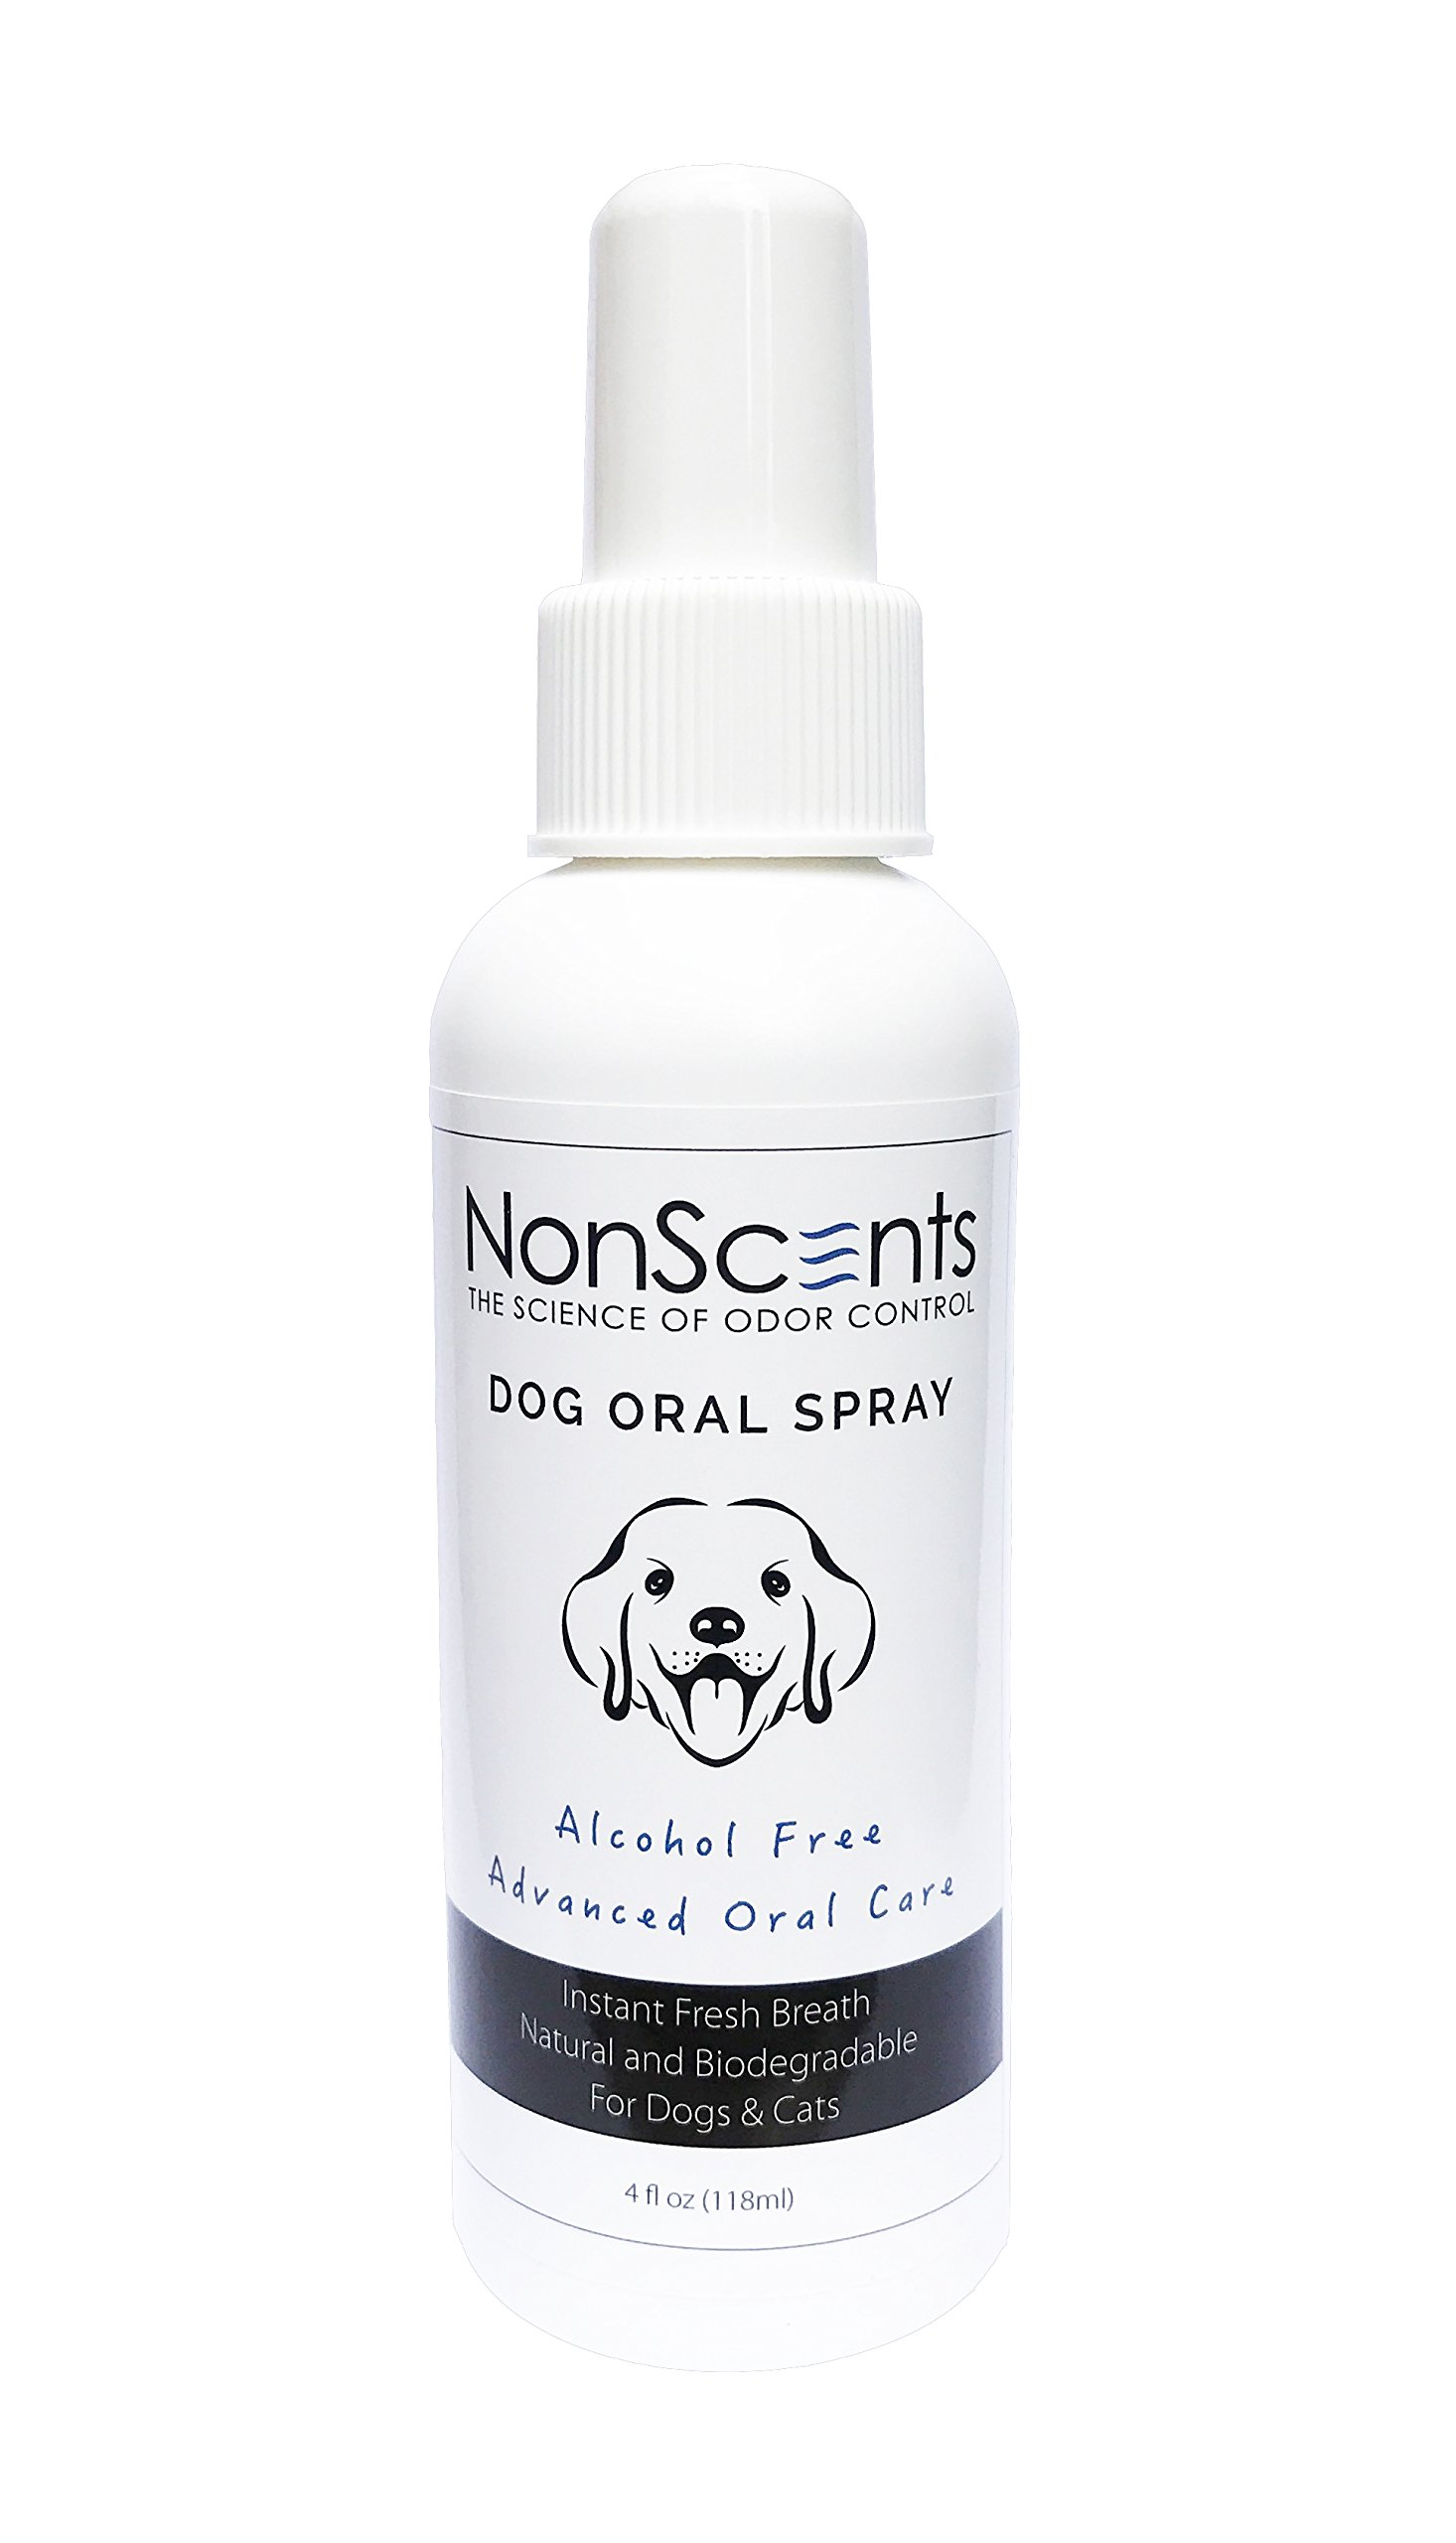 NonScents Dog Oral Spray — Dog Breath Freshener Eliminates Bad Dog Breath — 100% Natural, Veterinarian Recommended Deodorizer Spray Improves Pet Oral Health — 4 fl. oz.